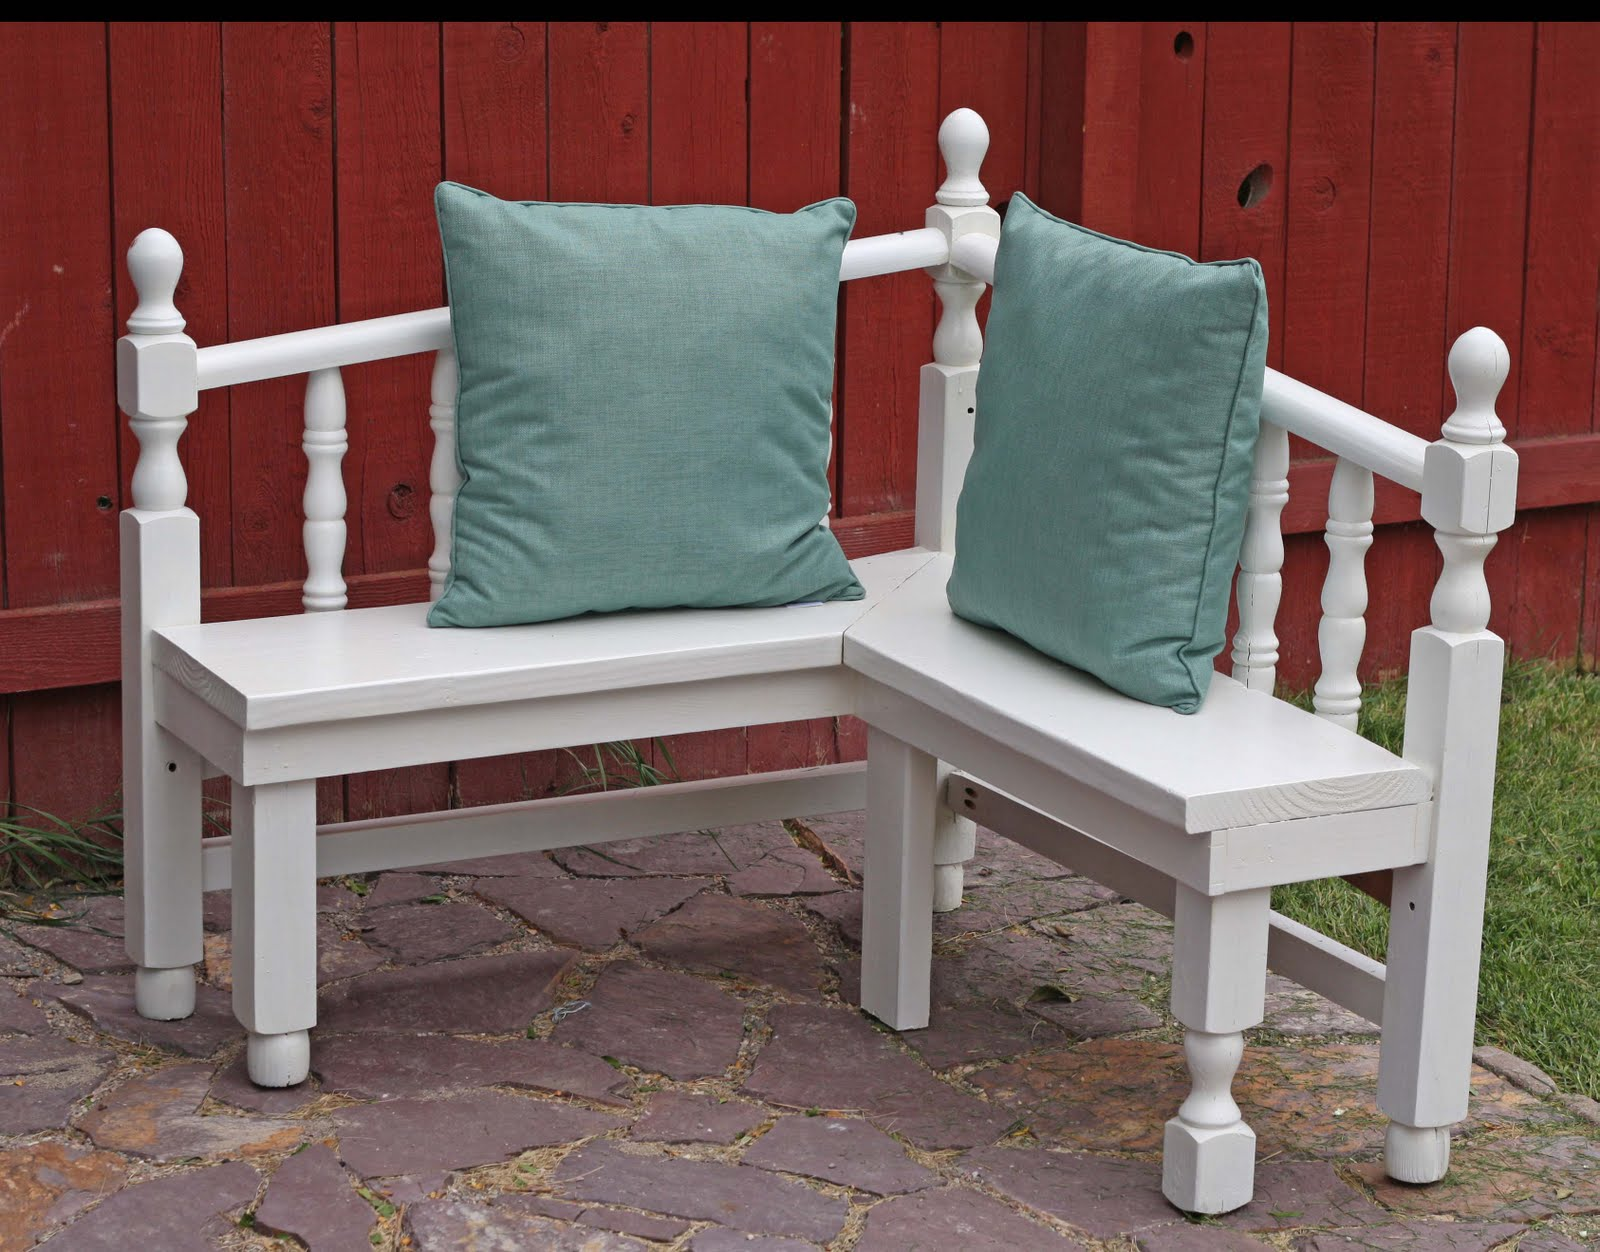 Corner Bench From Head And Foot Boards